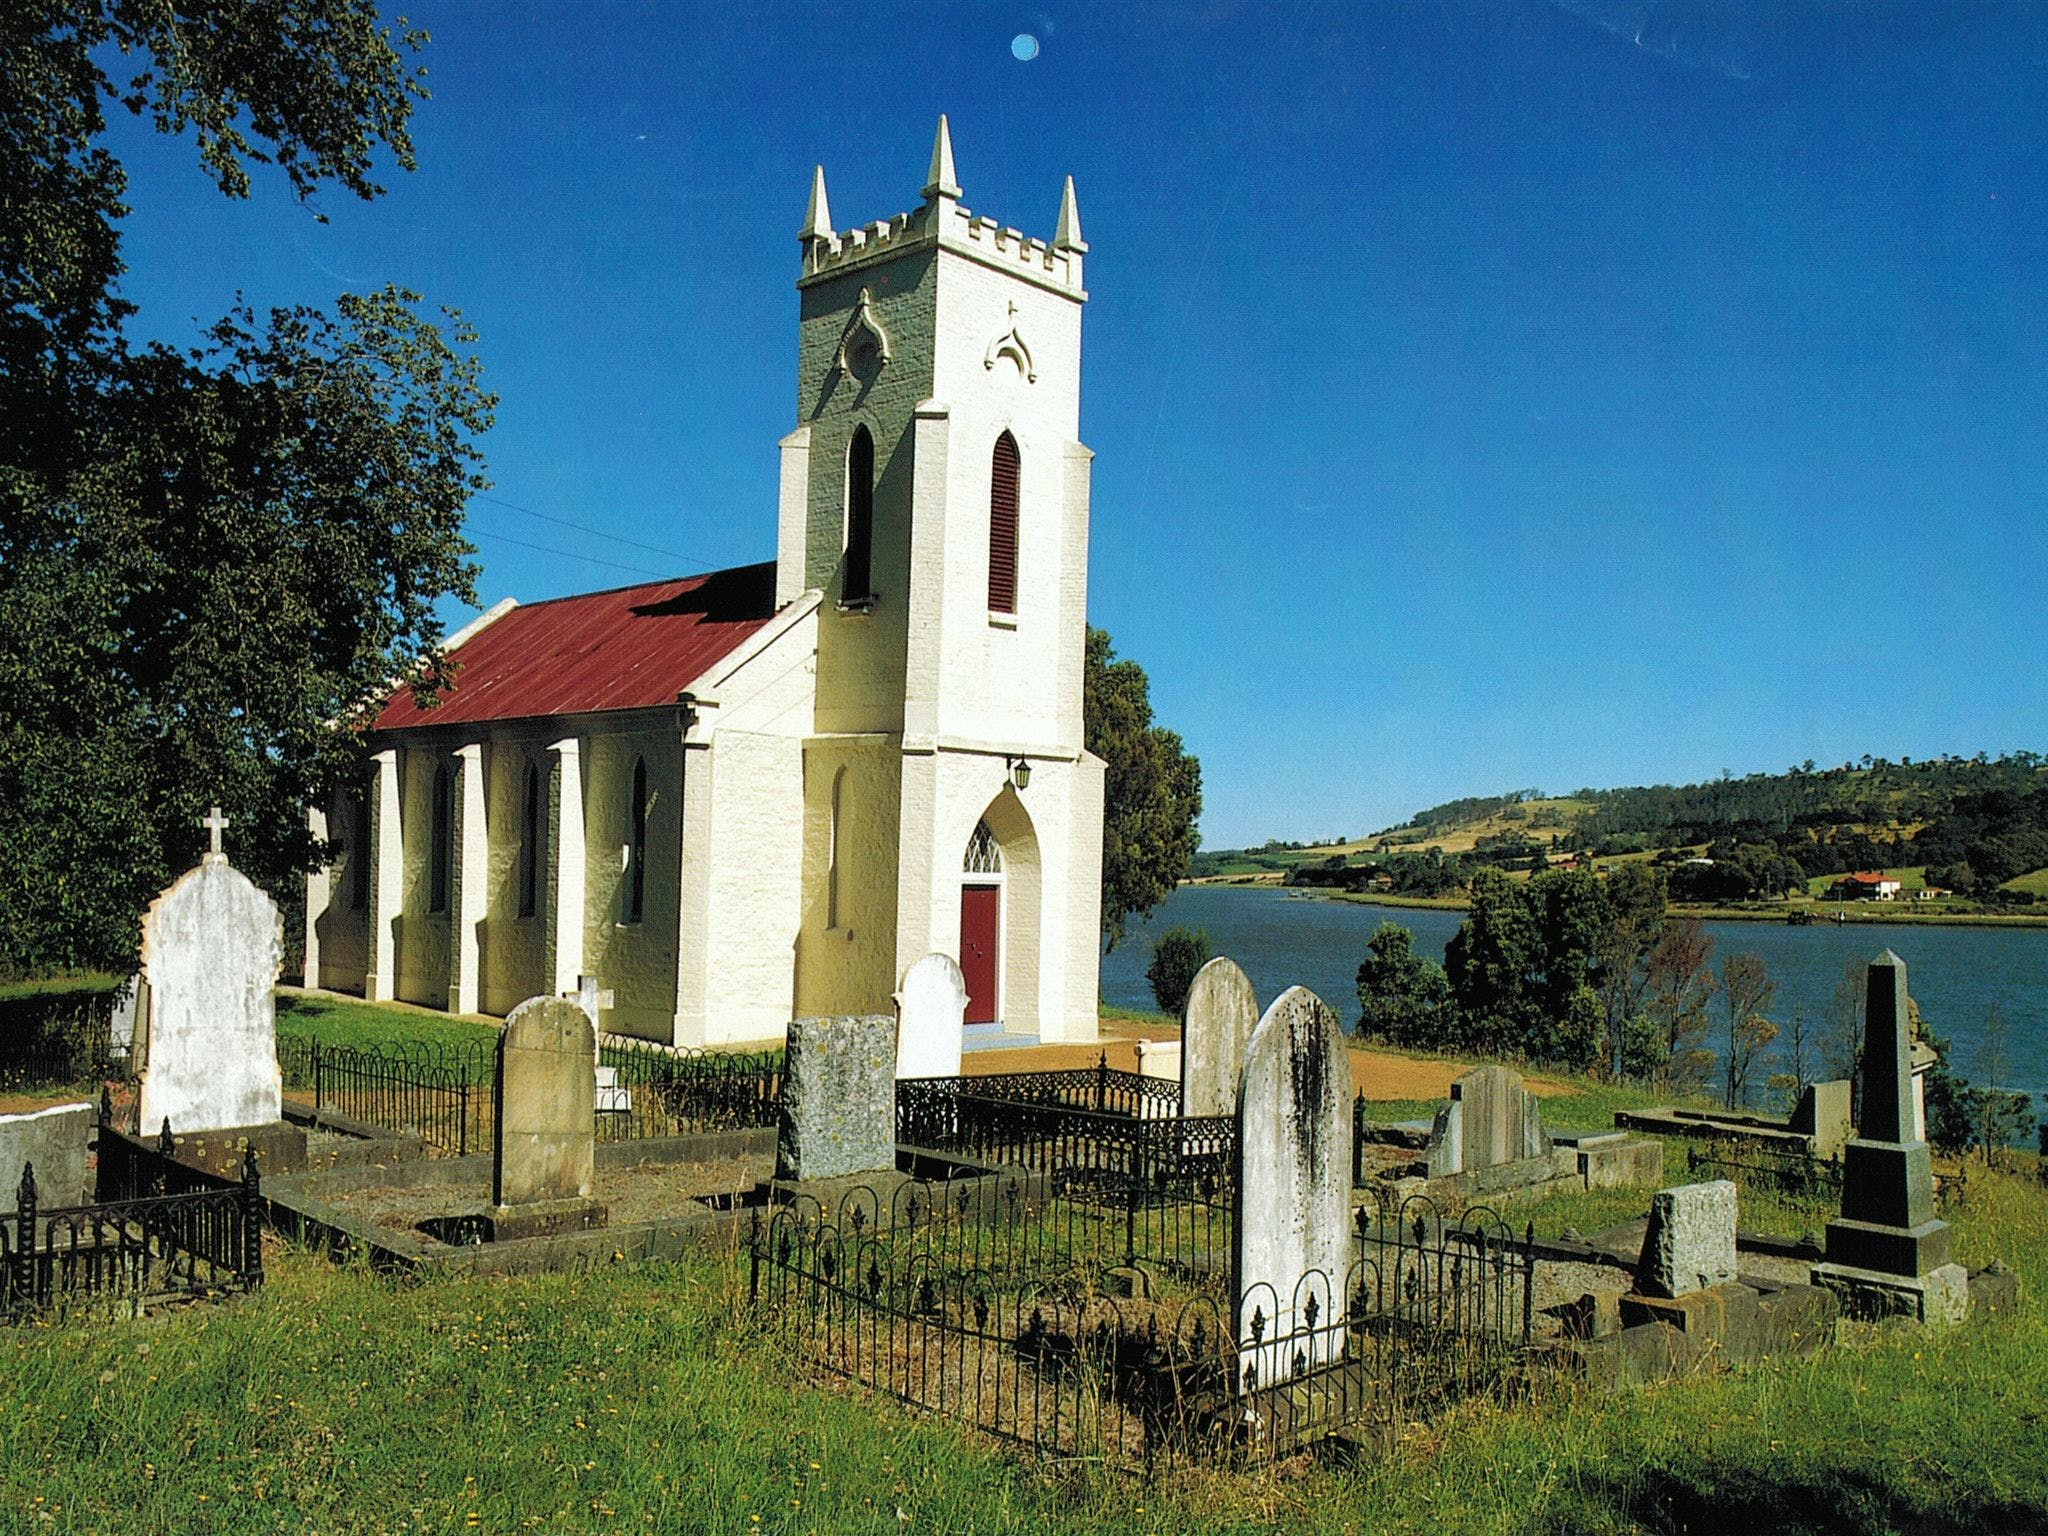 St Matthias' Anglican Church - Accommodation Batemans Bay